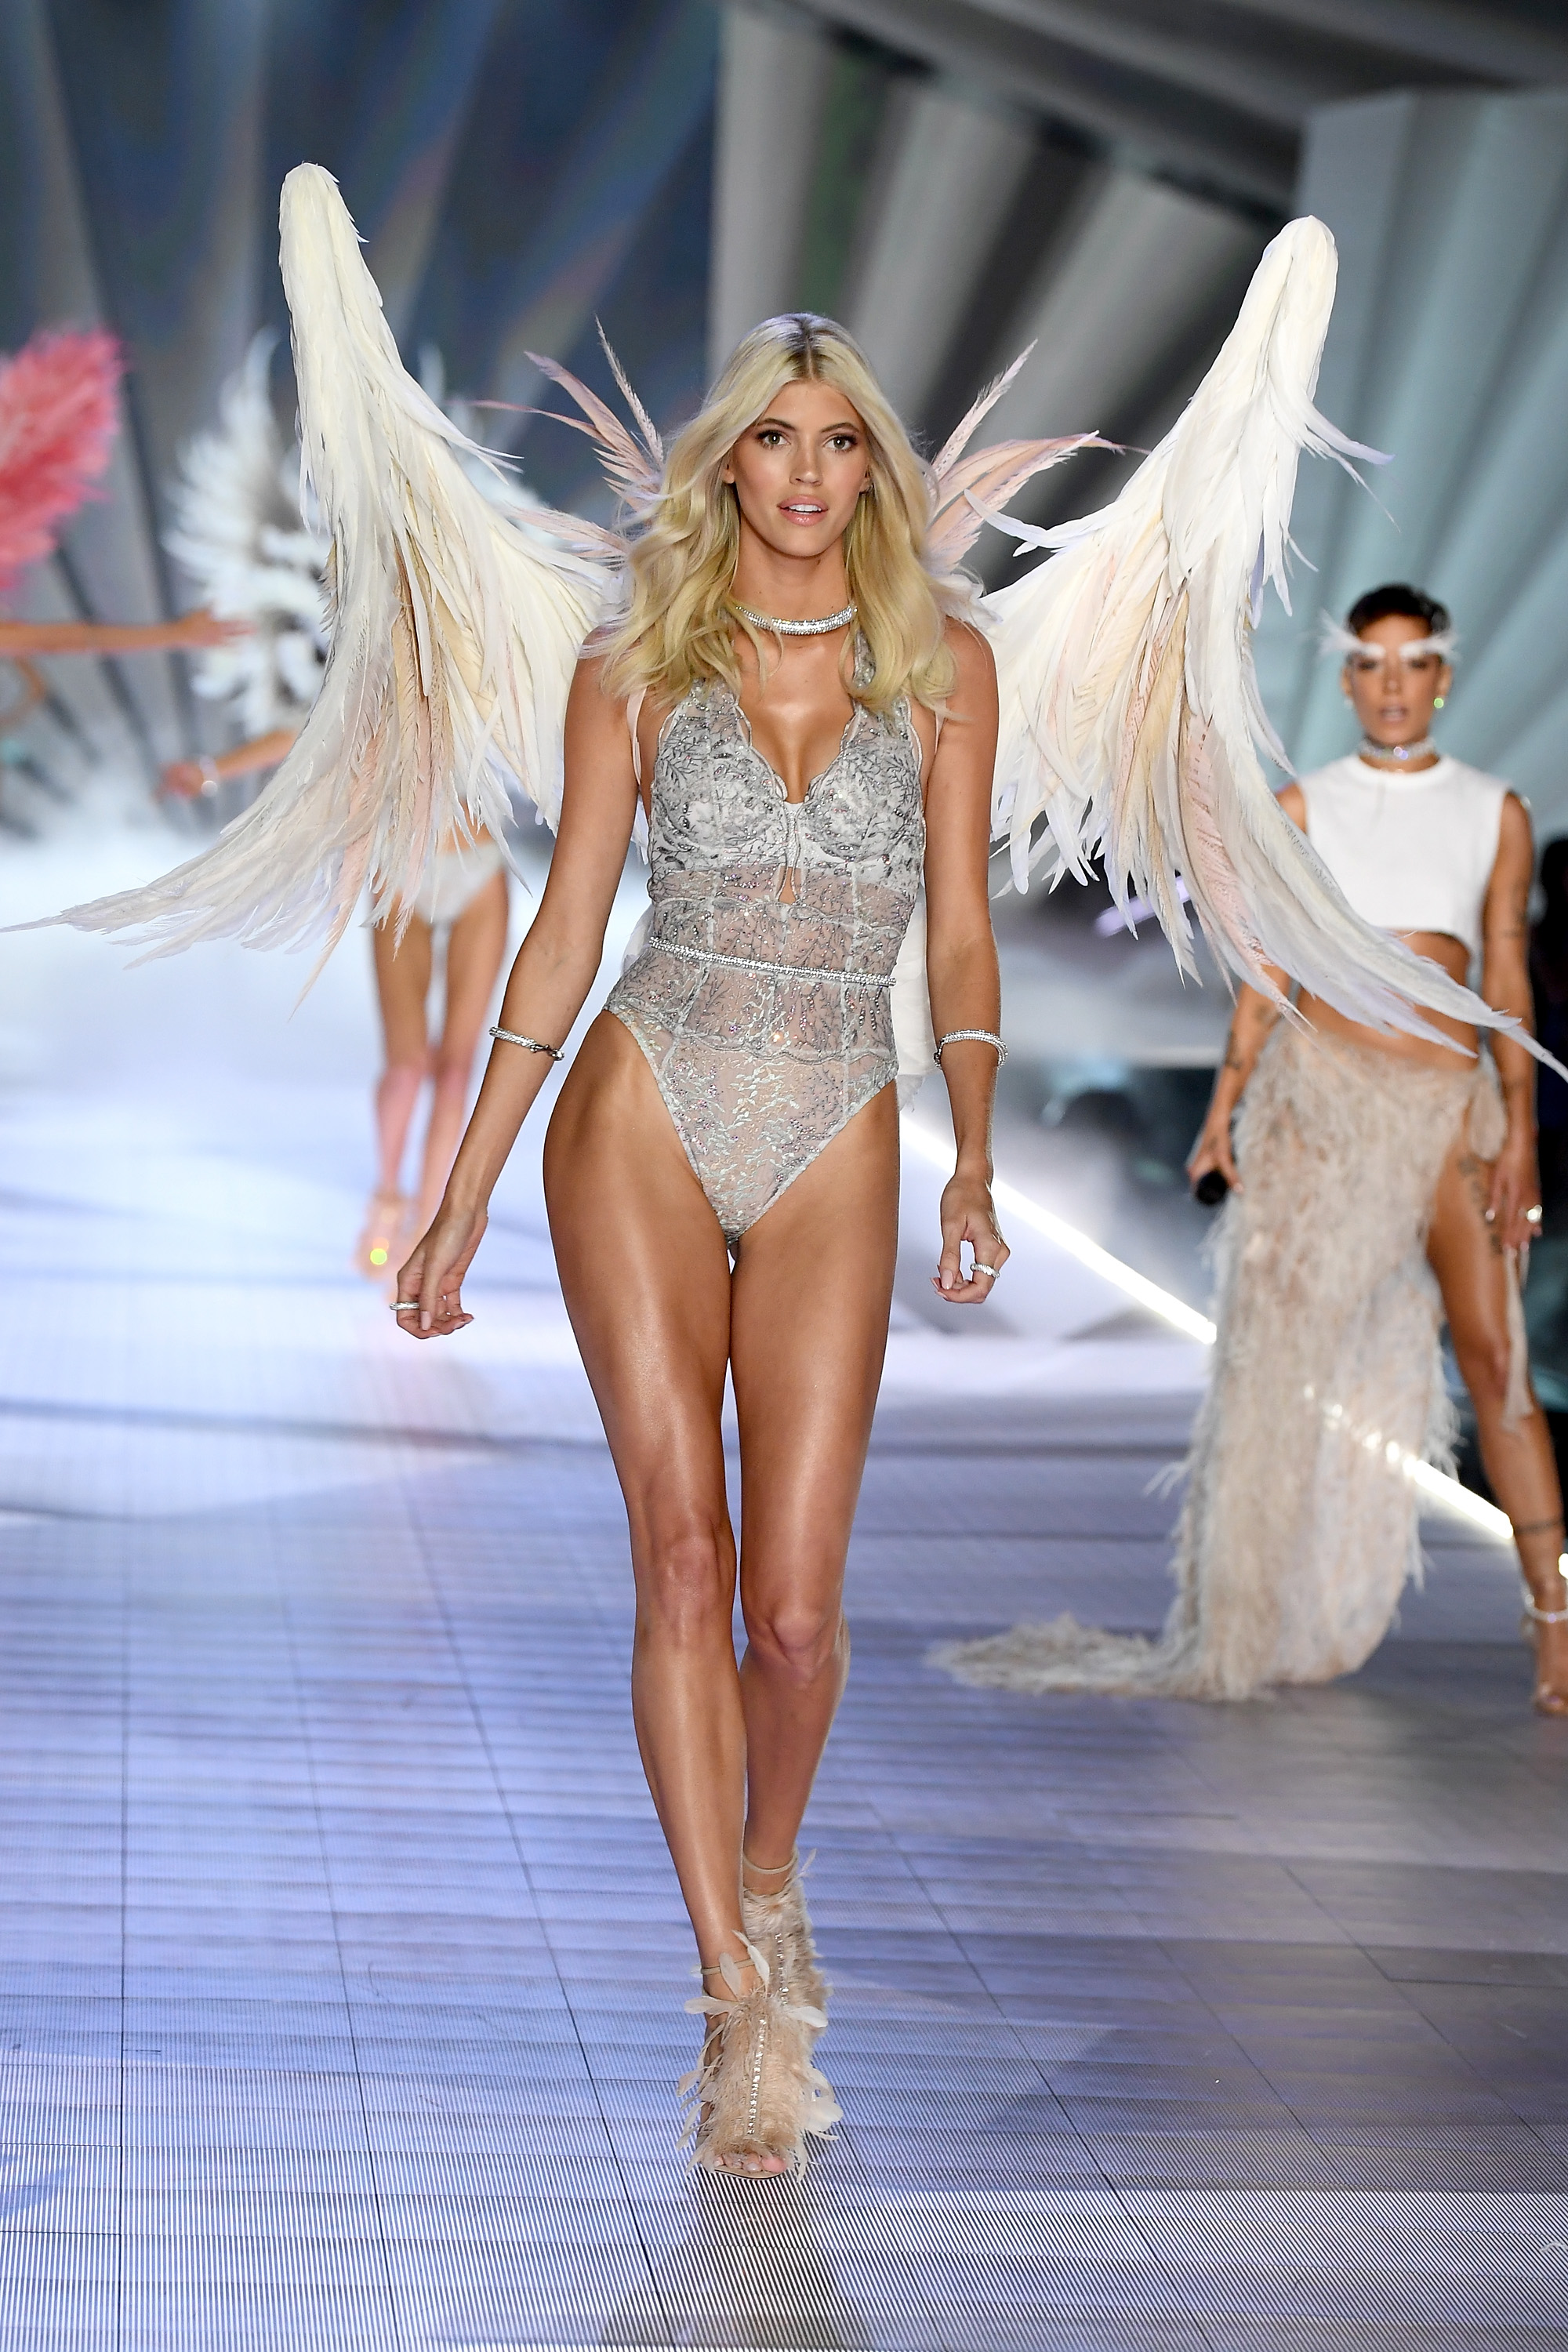 Devon Windsor walks the runway during the 2018 Victoria's Secret Fashion Show at Pier 94 on November 8, 2018, in New York City. (Getty Images)